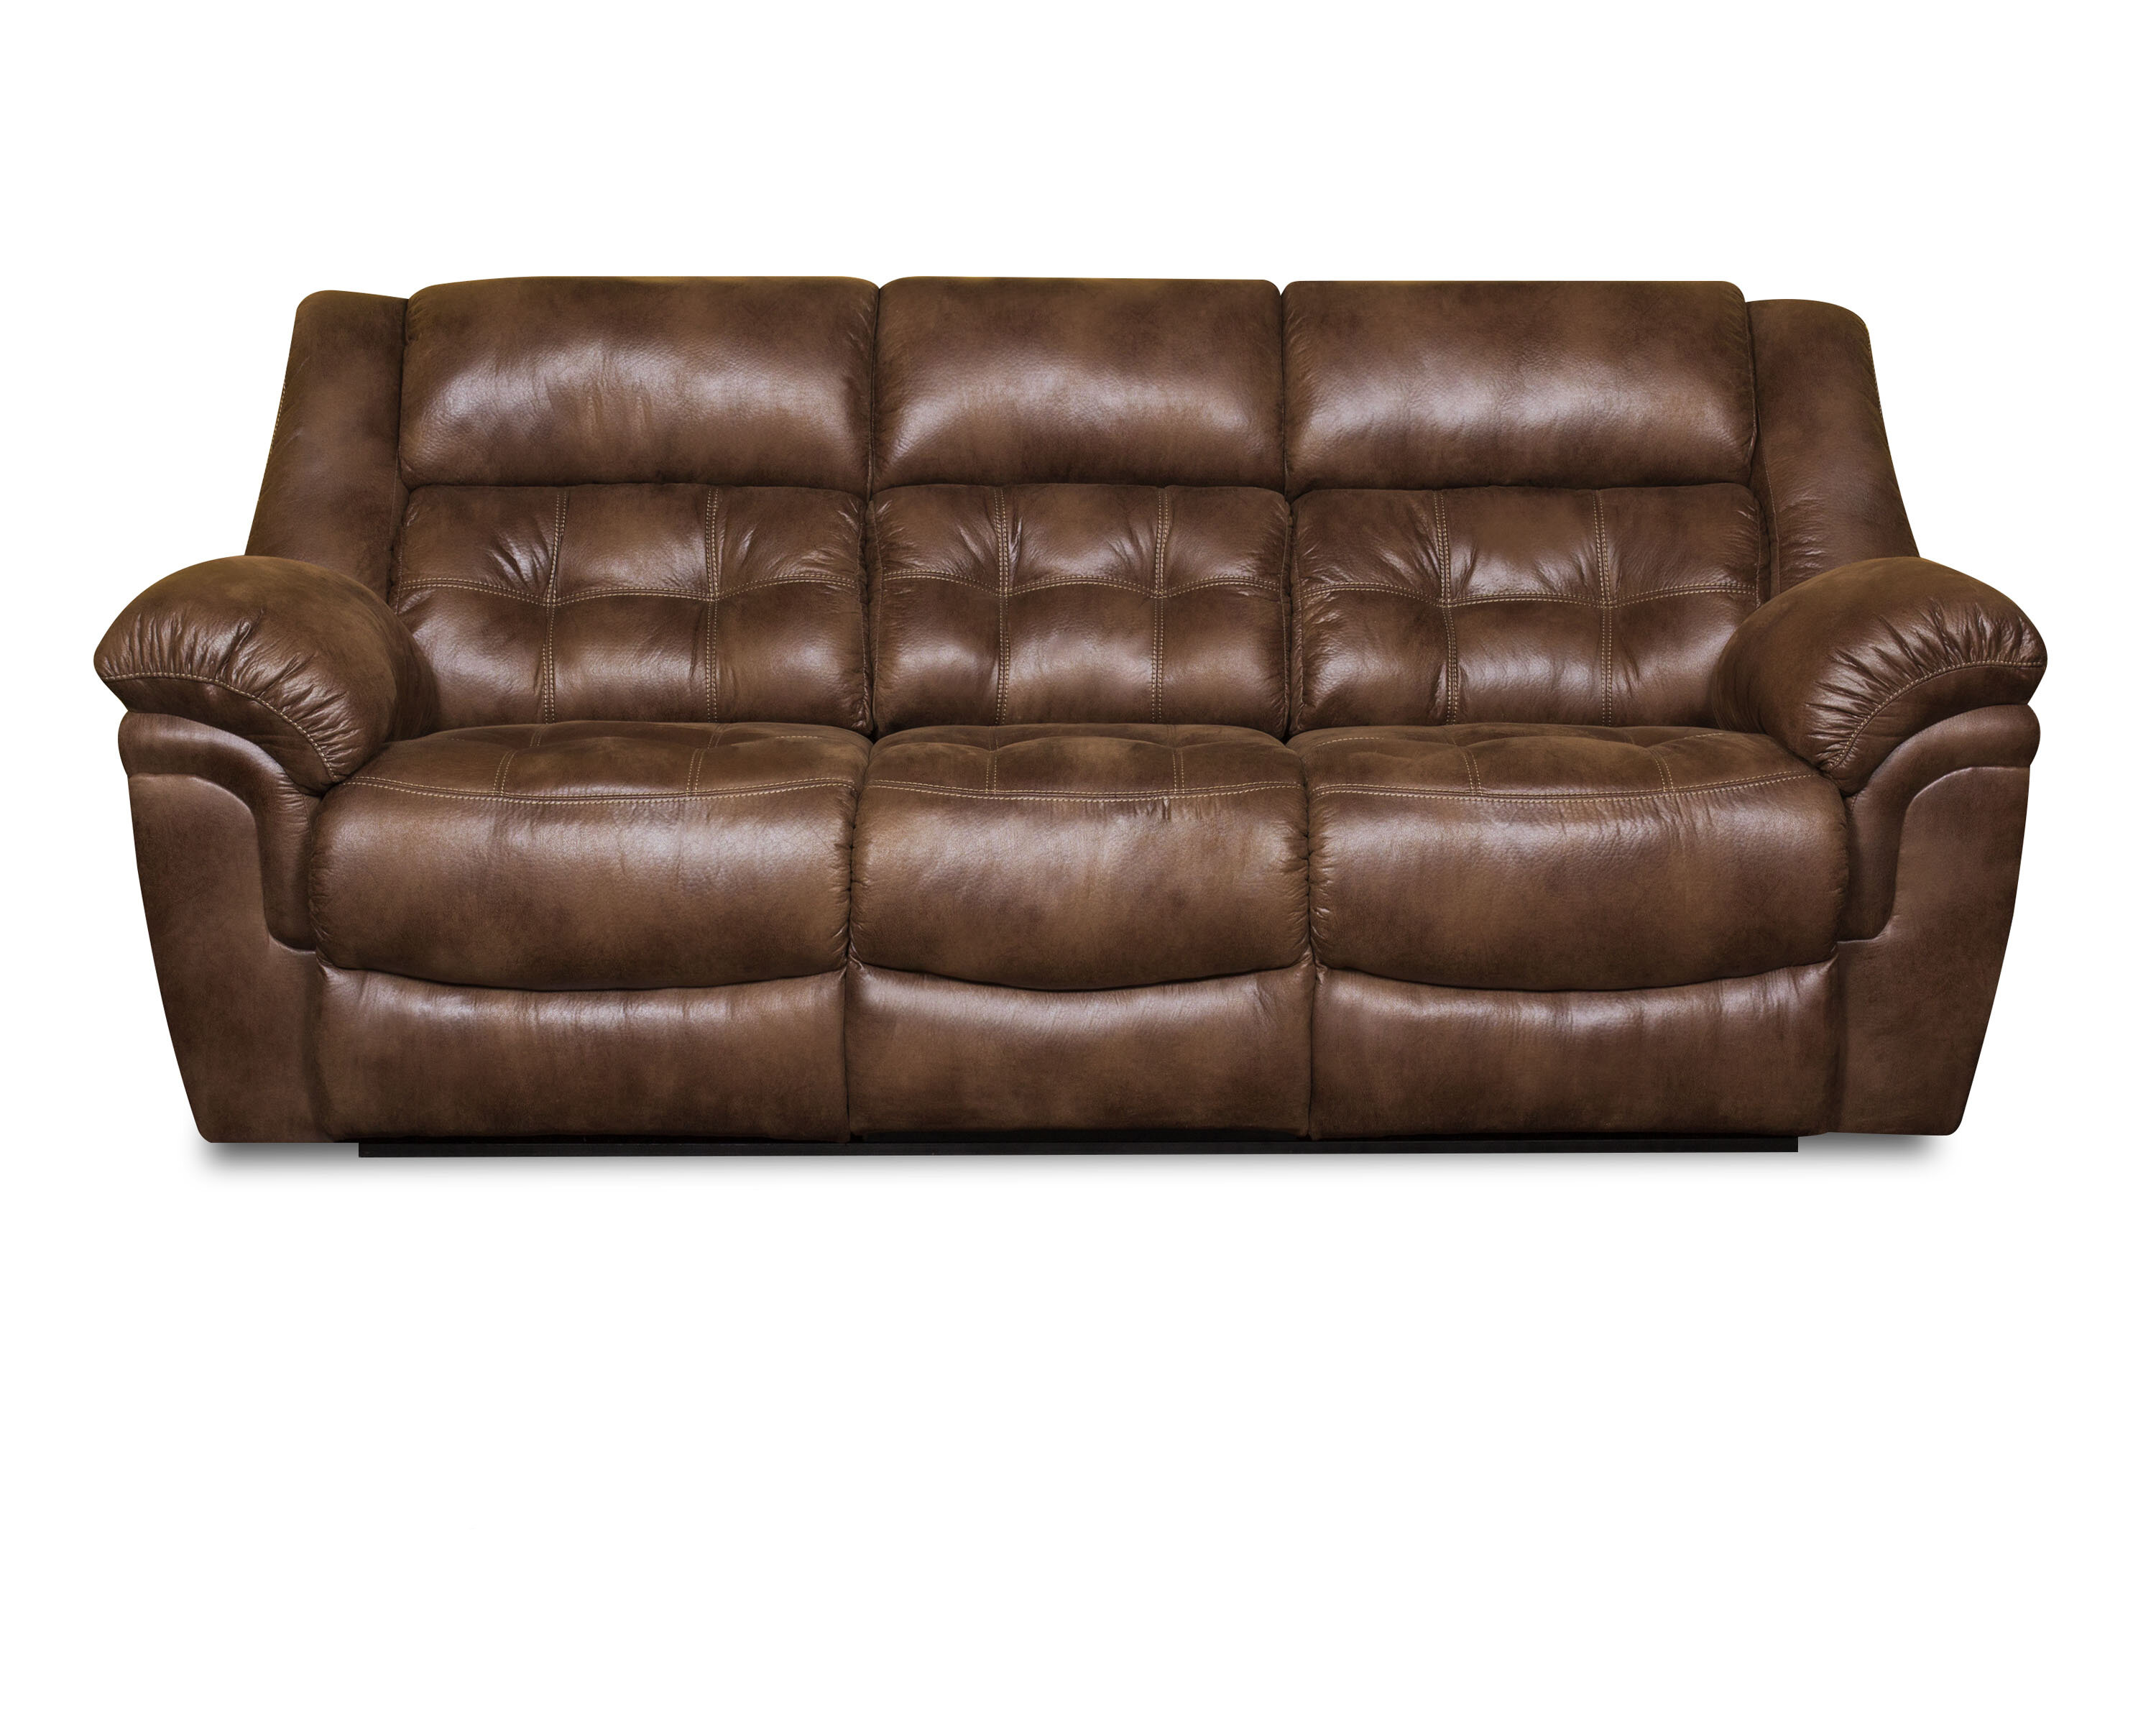 Loon Peak Ruffin Motion Reclining Sofa By Simmons Upholstery Reviews Wayfair